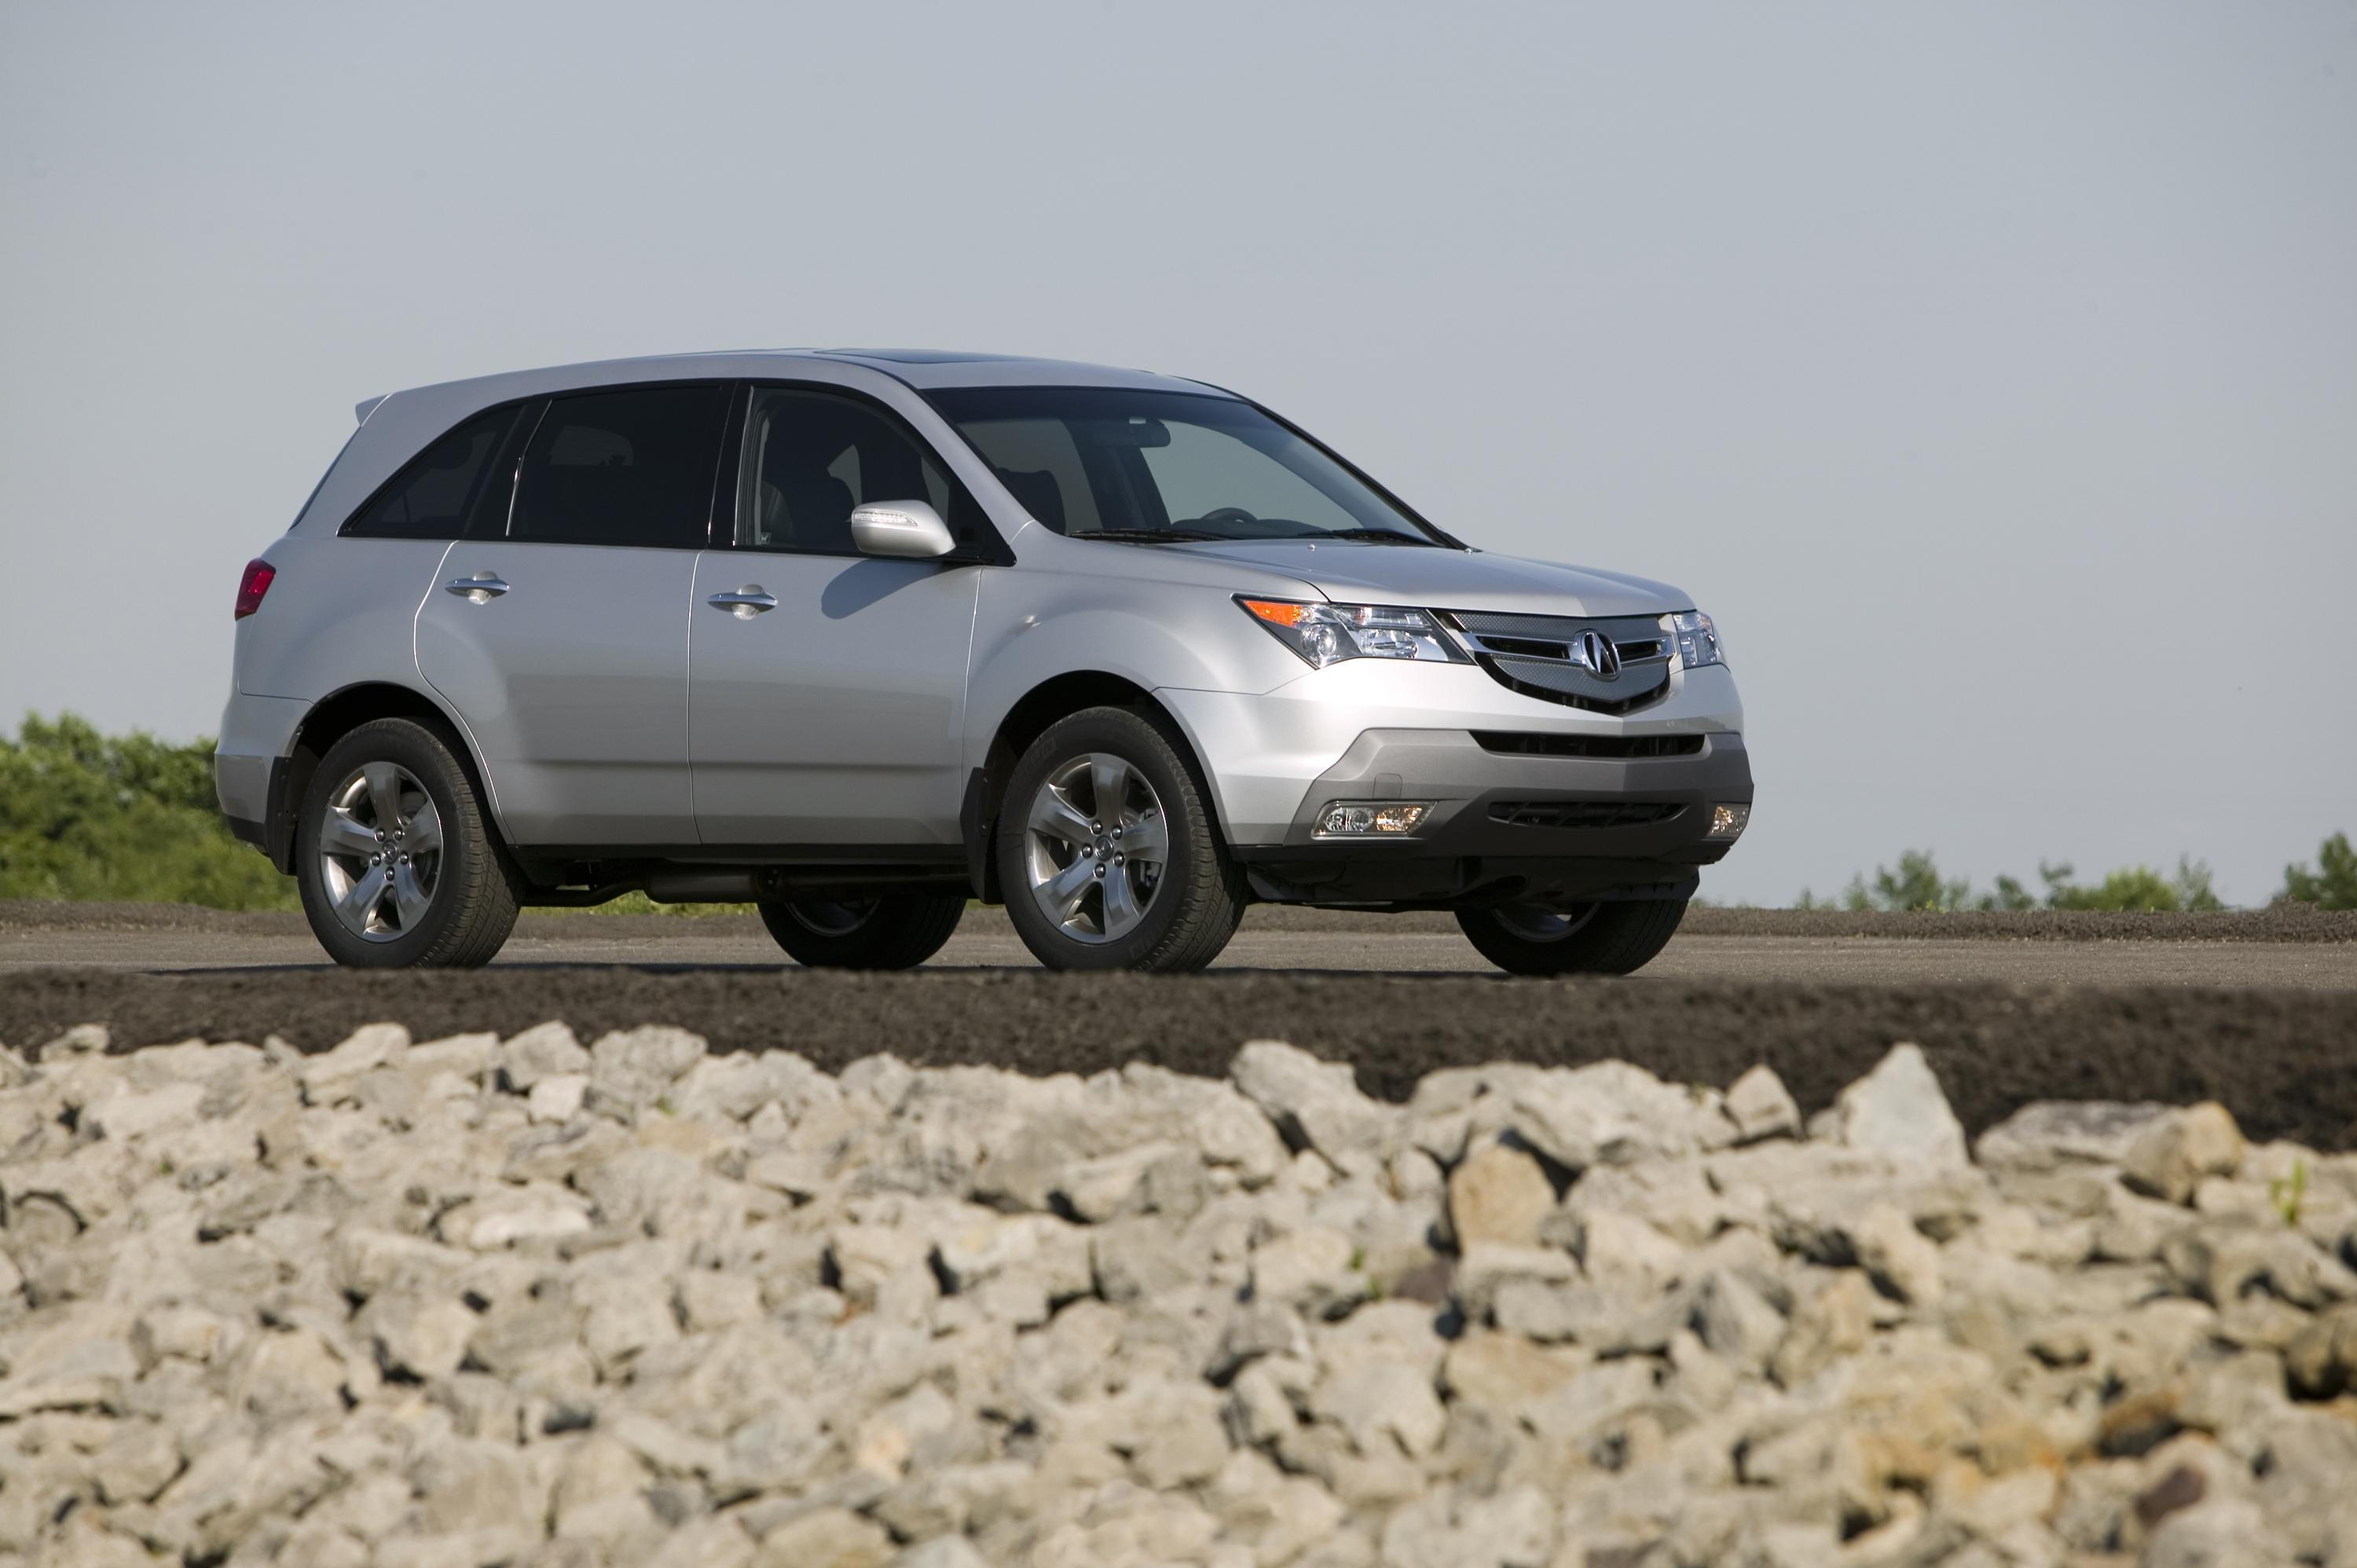 mdx alt acura review drive cost test